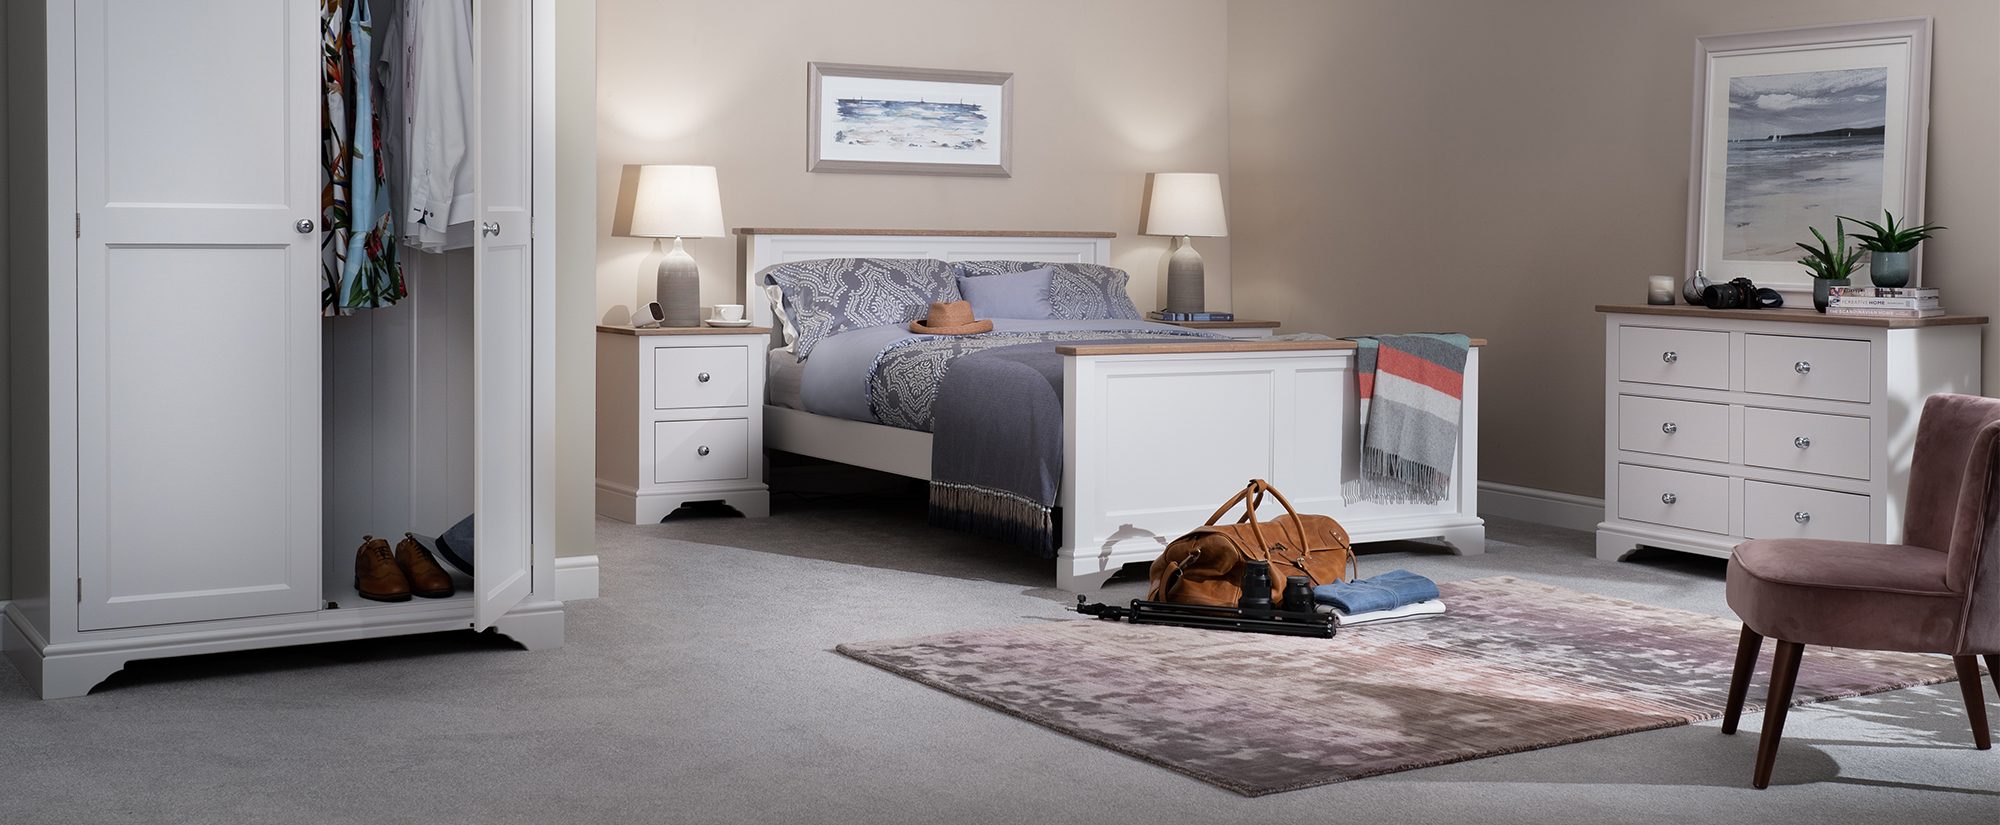 Amberley Bedroom Furniture